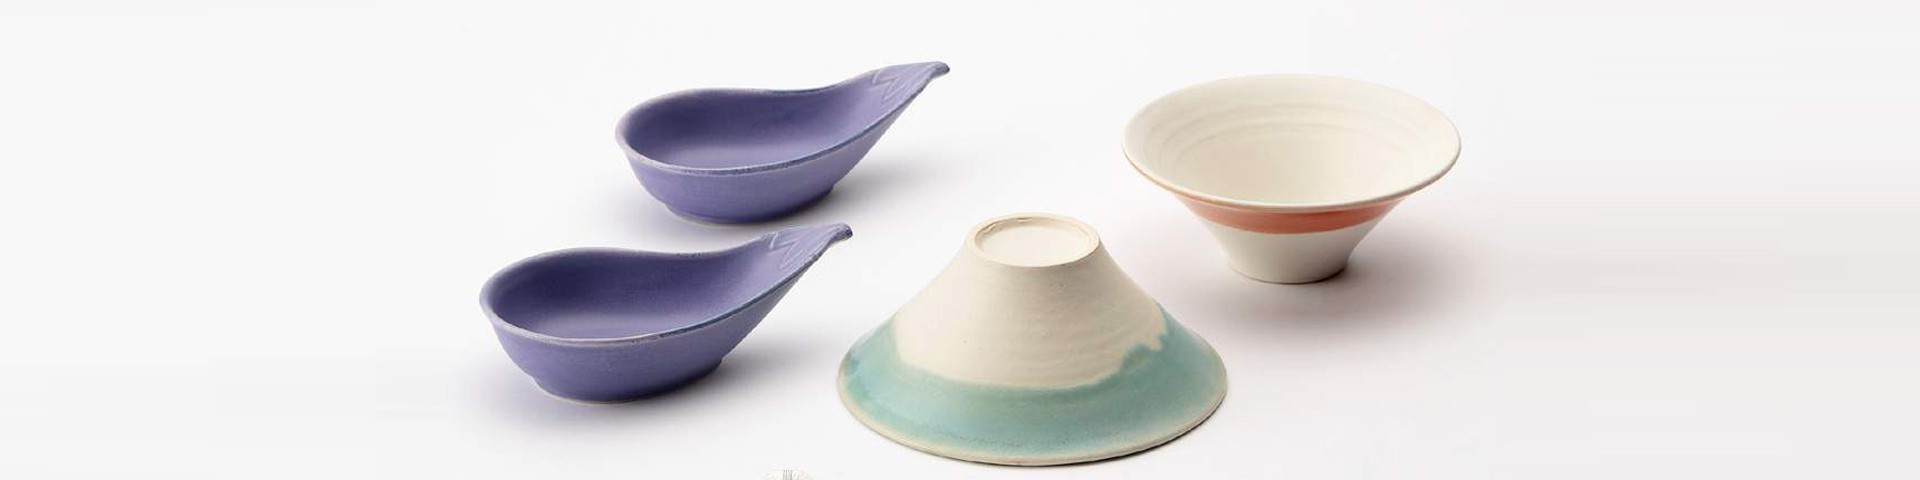 JAPANESE DINNERWARE | CRAFMANSHIP AND DESIGN